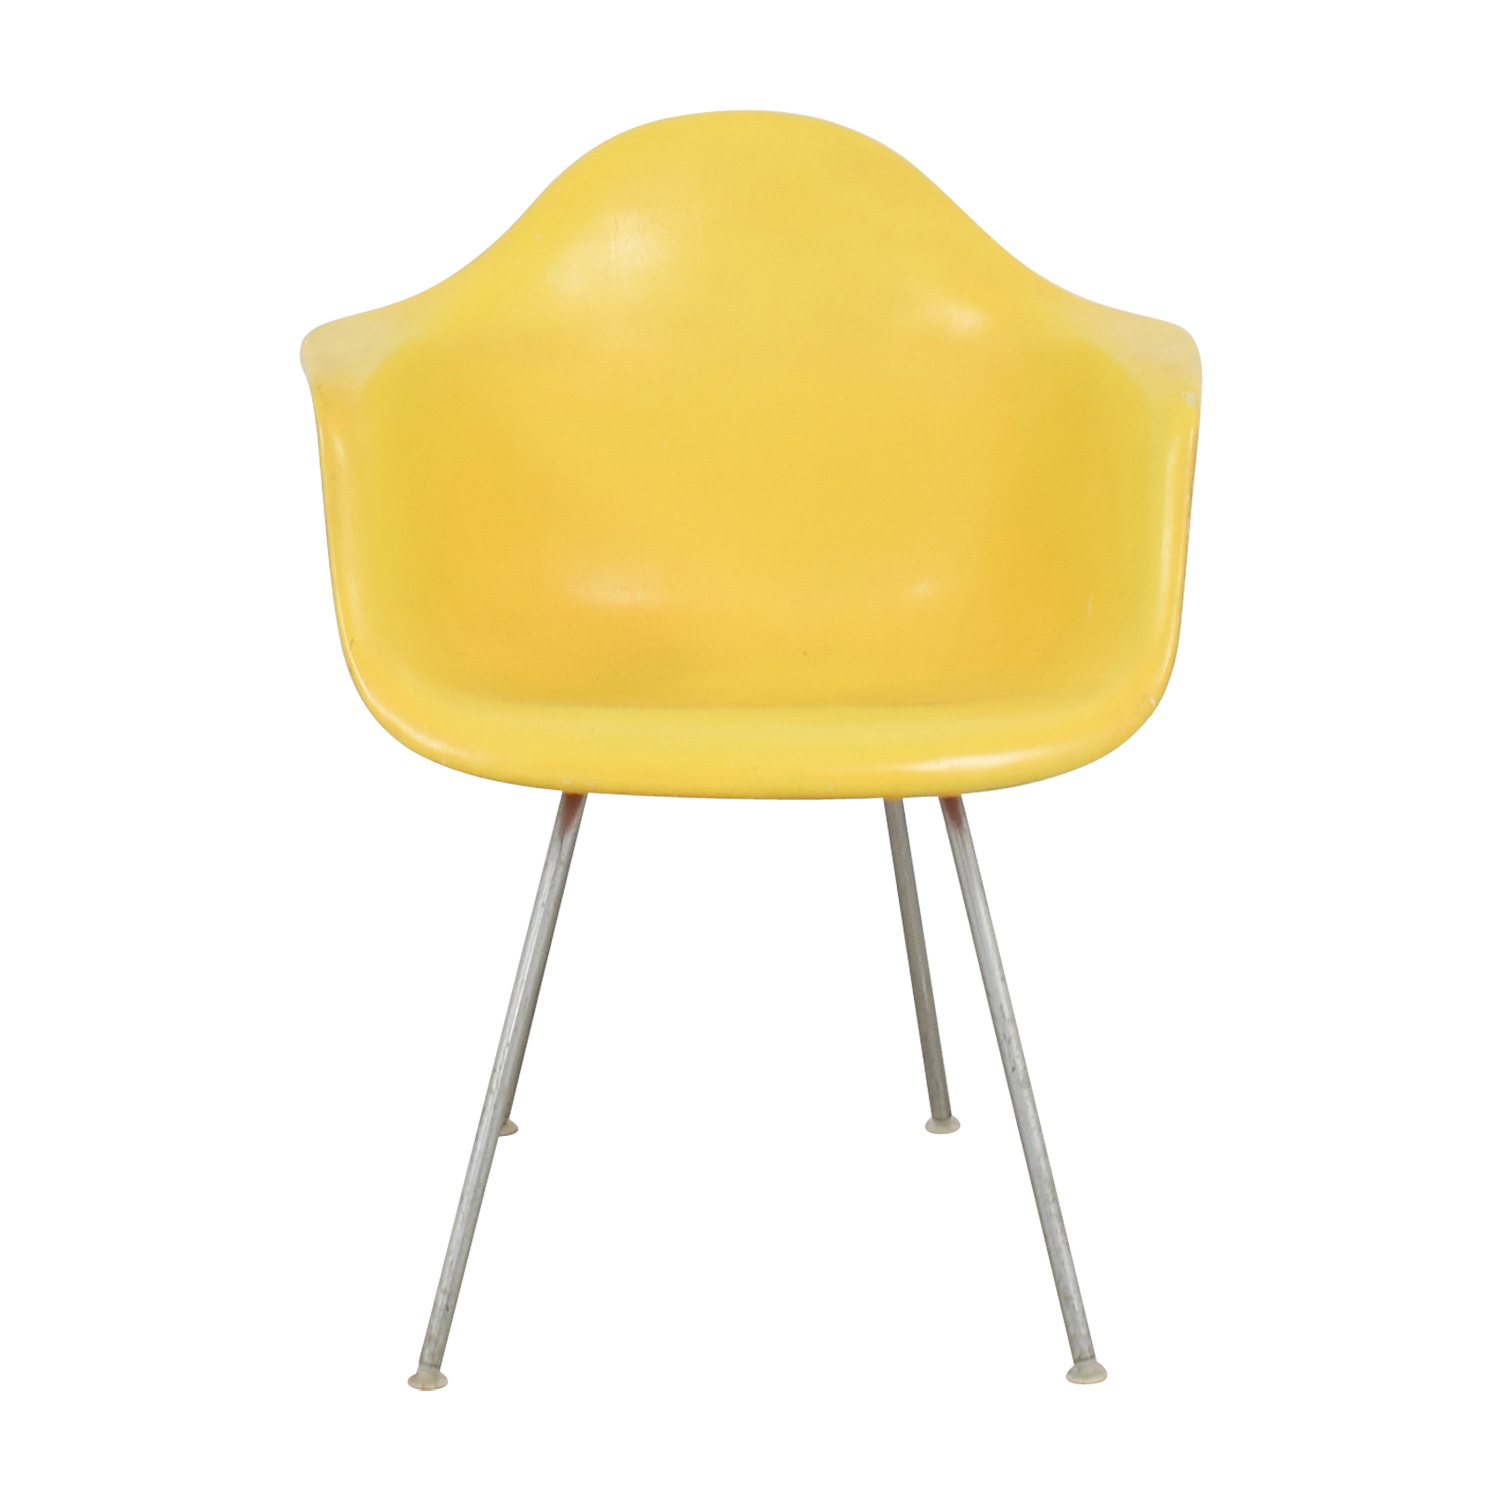 Yellow and Orange Plastic Eames Inspired Arm Chair second hand